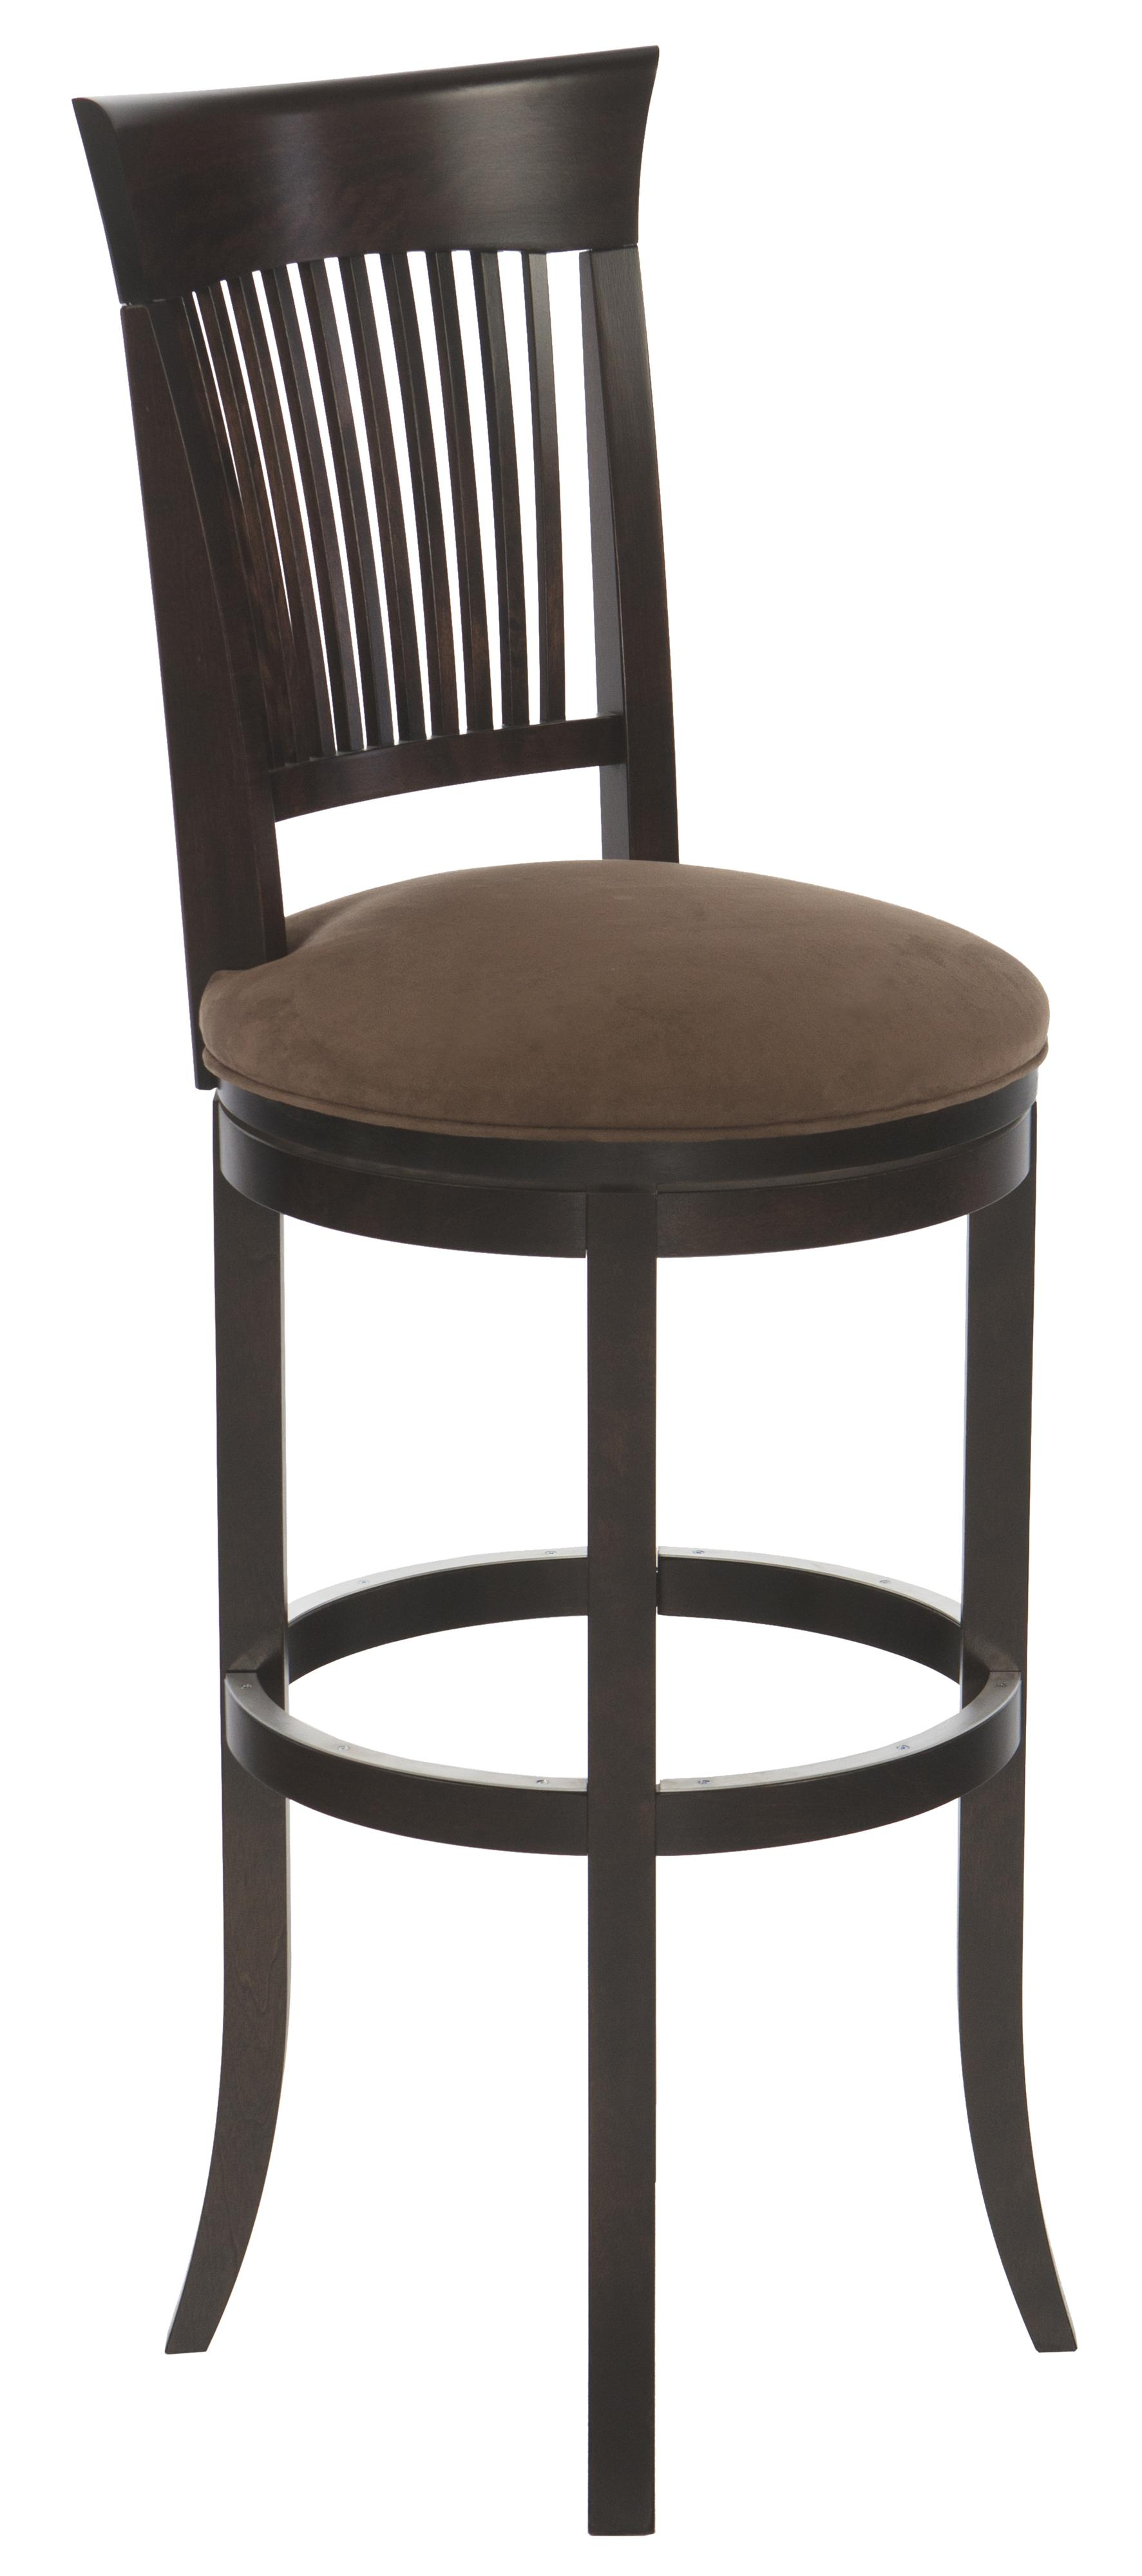 Canadel Bar Stools Sns08270mh05m34 Customizable 36